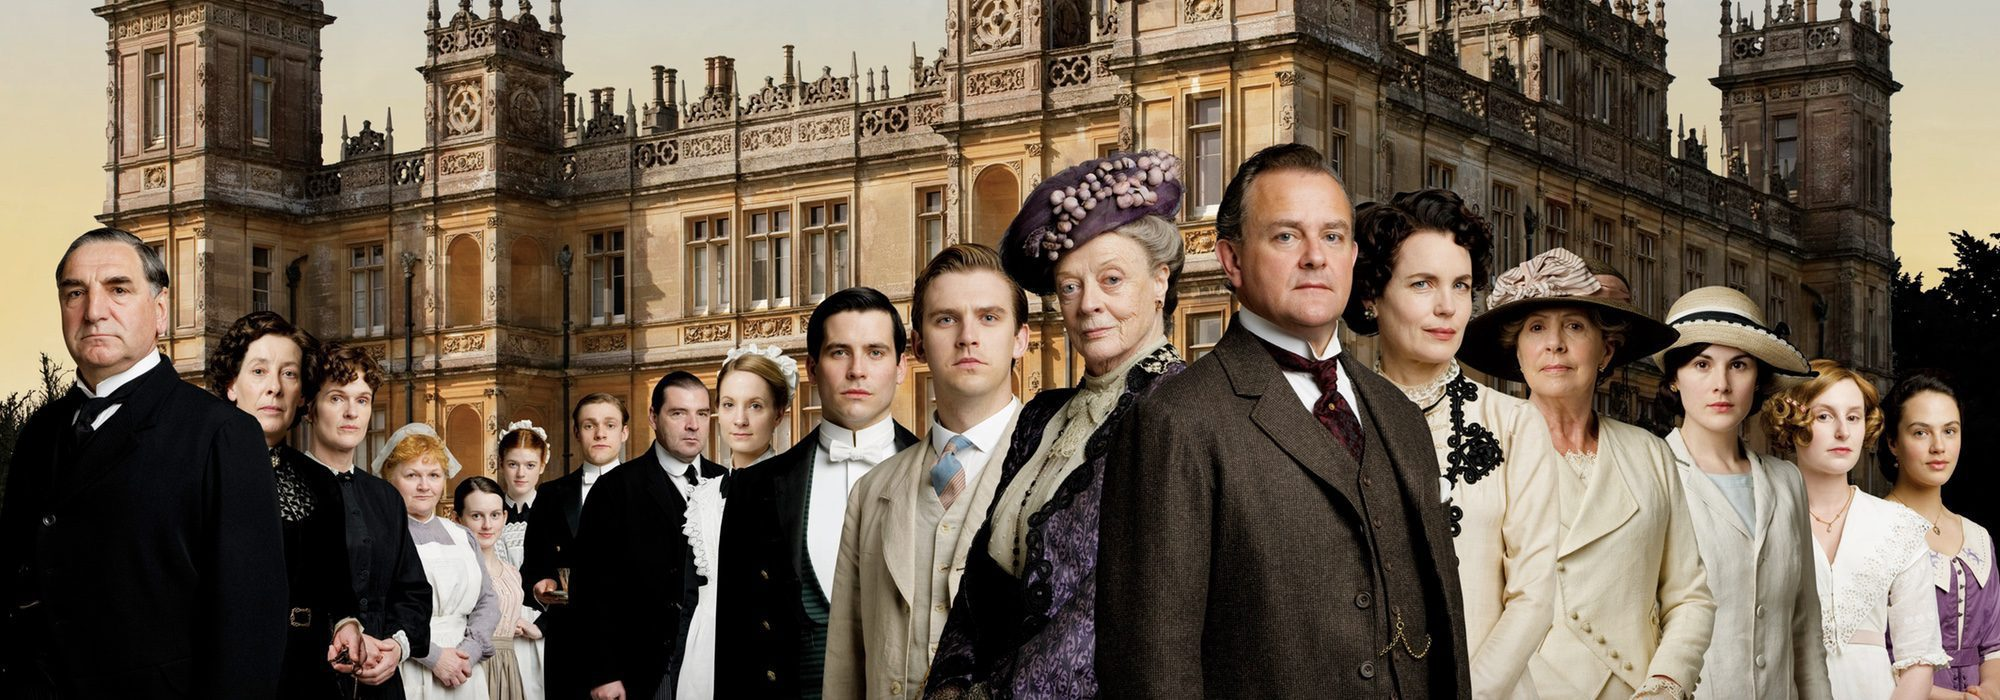 Downton Abbey. Serie TV - FormulaTV